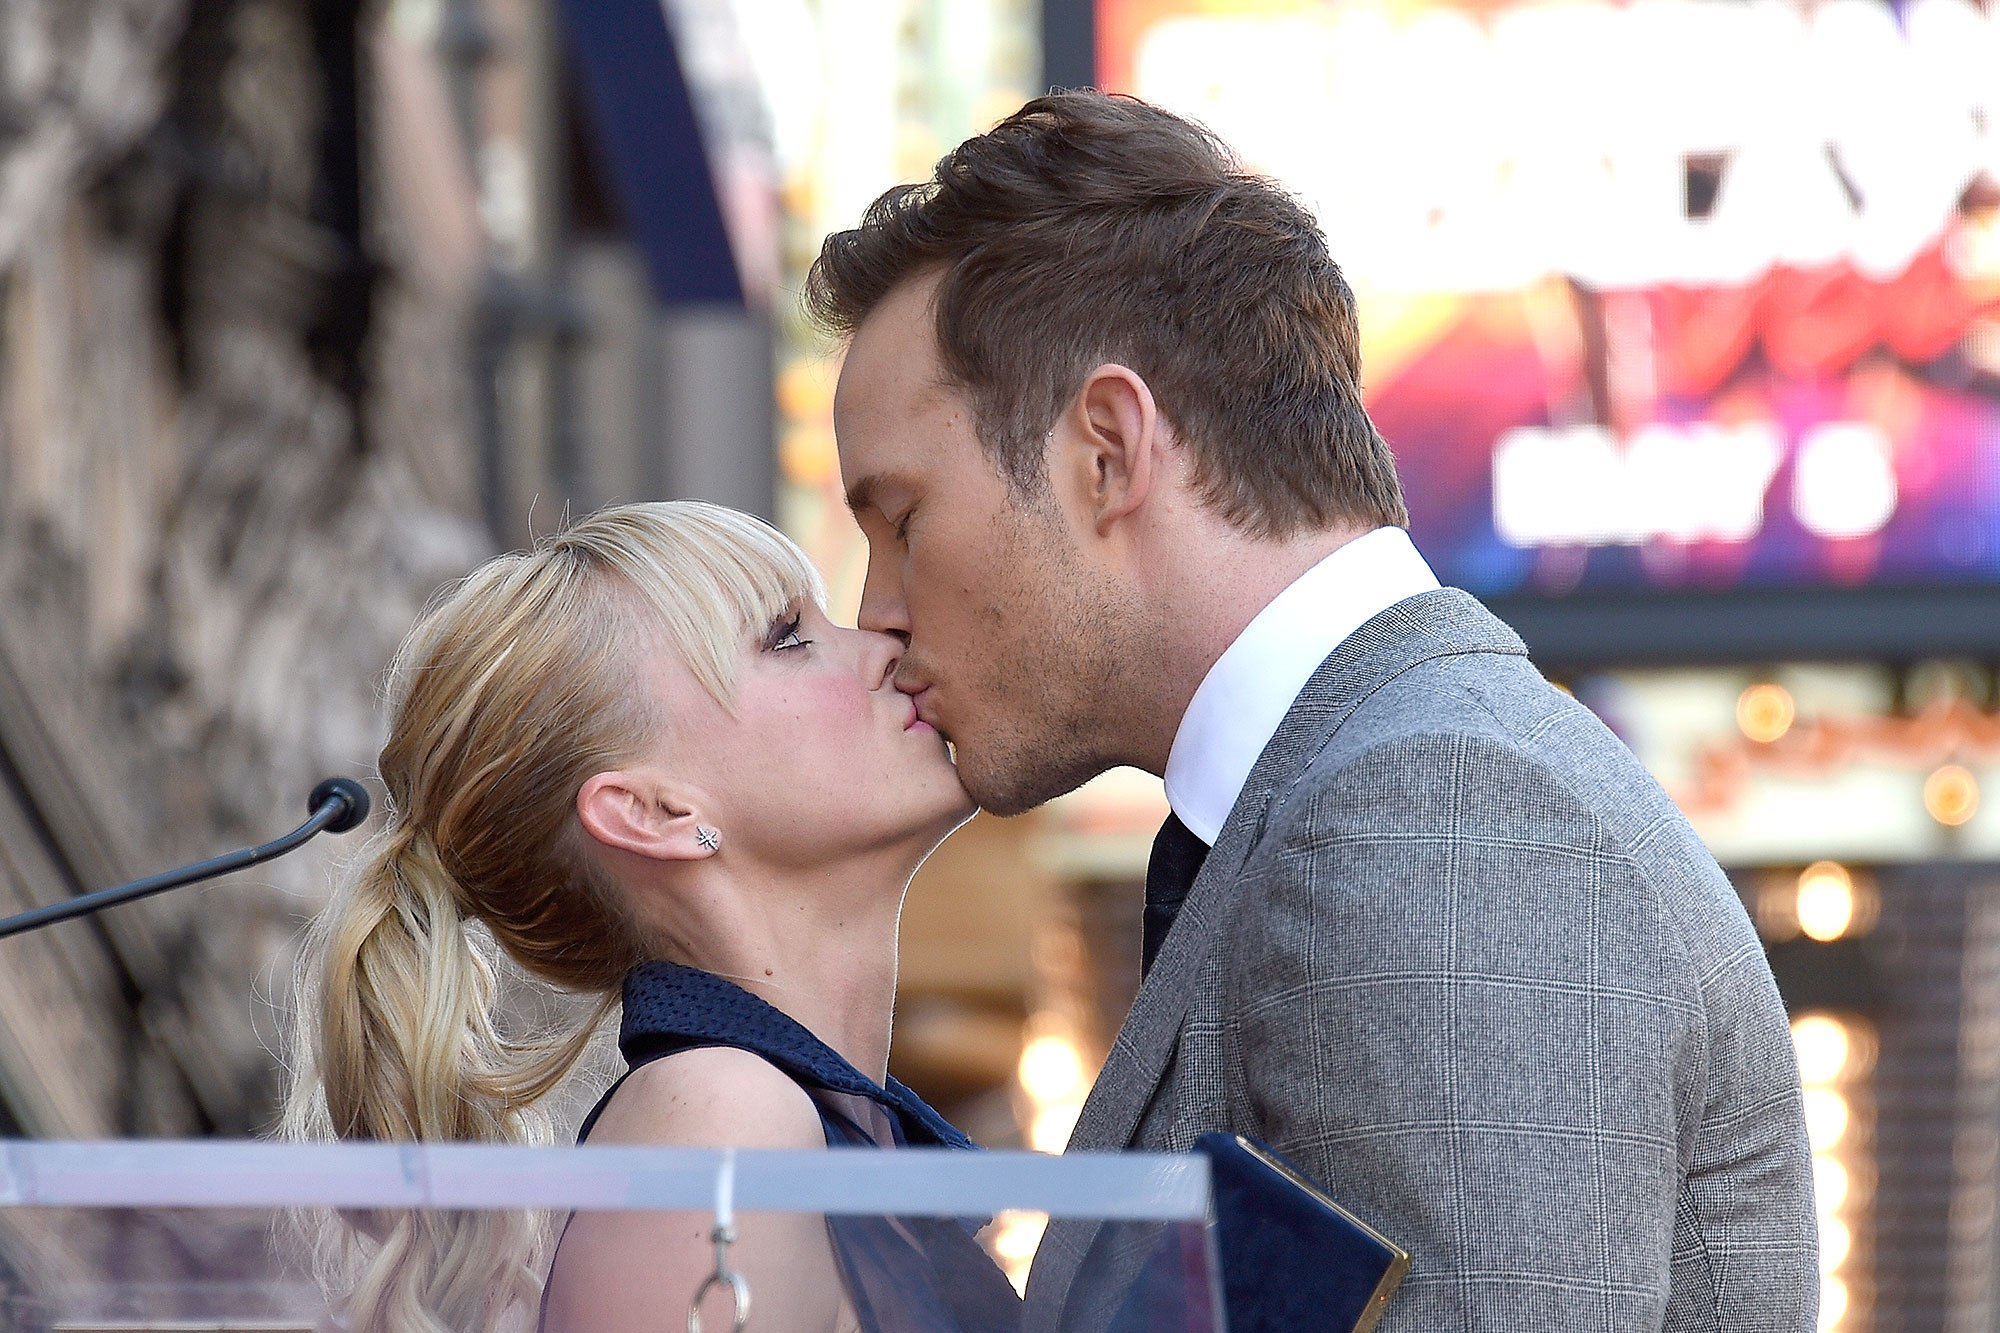 Chris Pratt Thanks Wife Anna Faris in Emotional Hollywood Walk of Fame Speech: 'You Have My Heart'